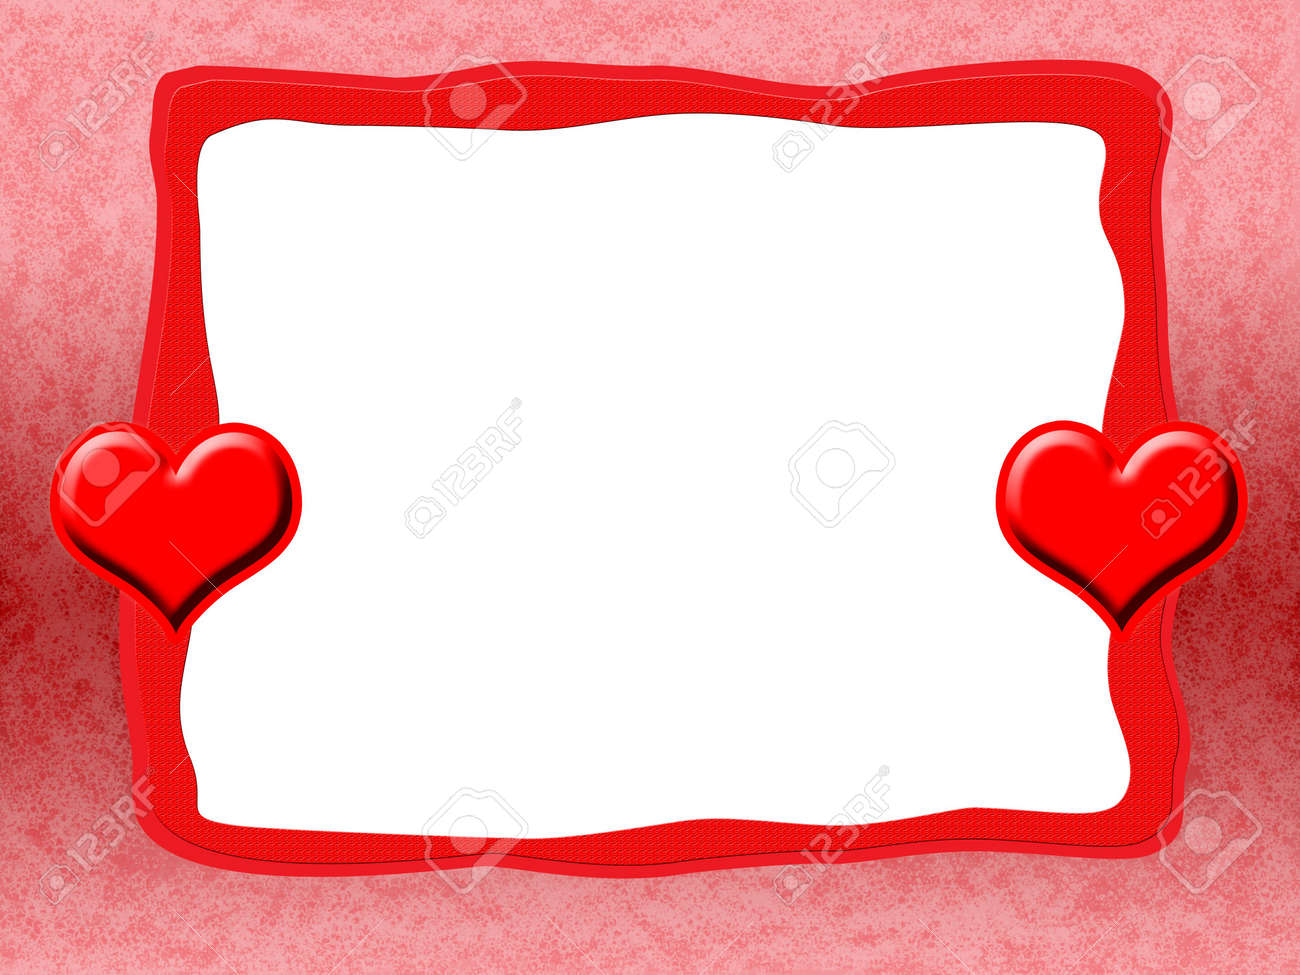 Elegant Romantic Love Frame With Red Hearts And Blank White ...